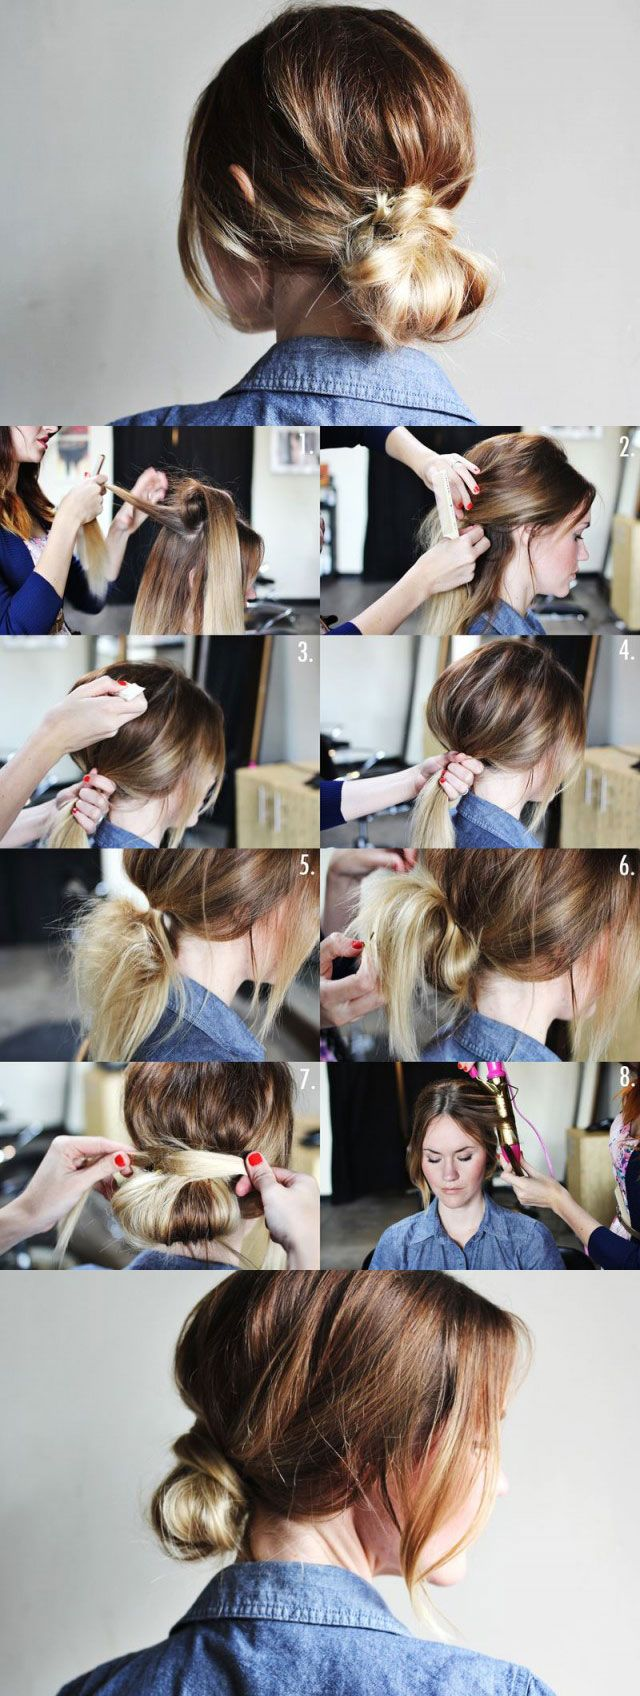 best haarige angelegenheit images on pinterest hair ideas